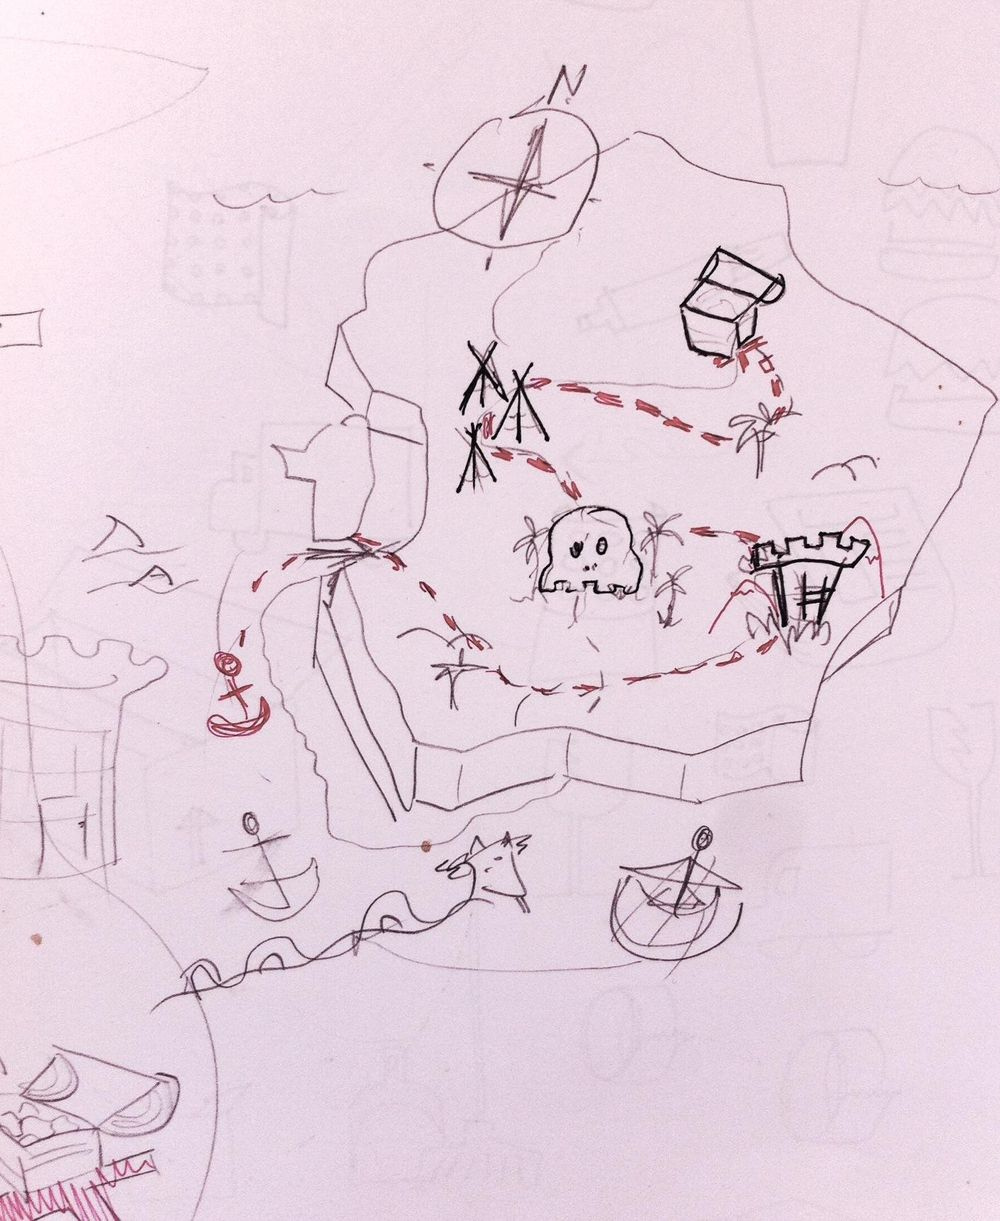 Treasure Map - image 1 - student project